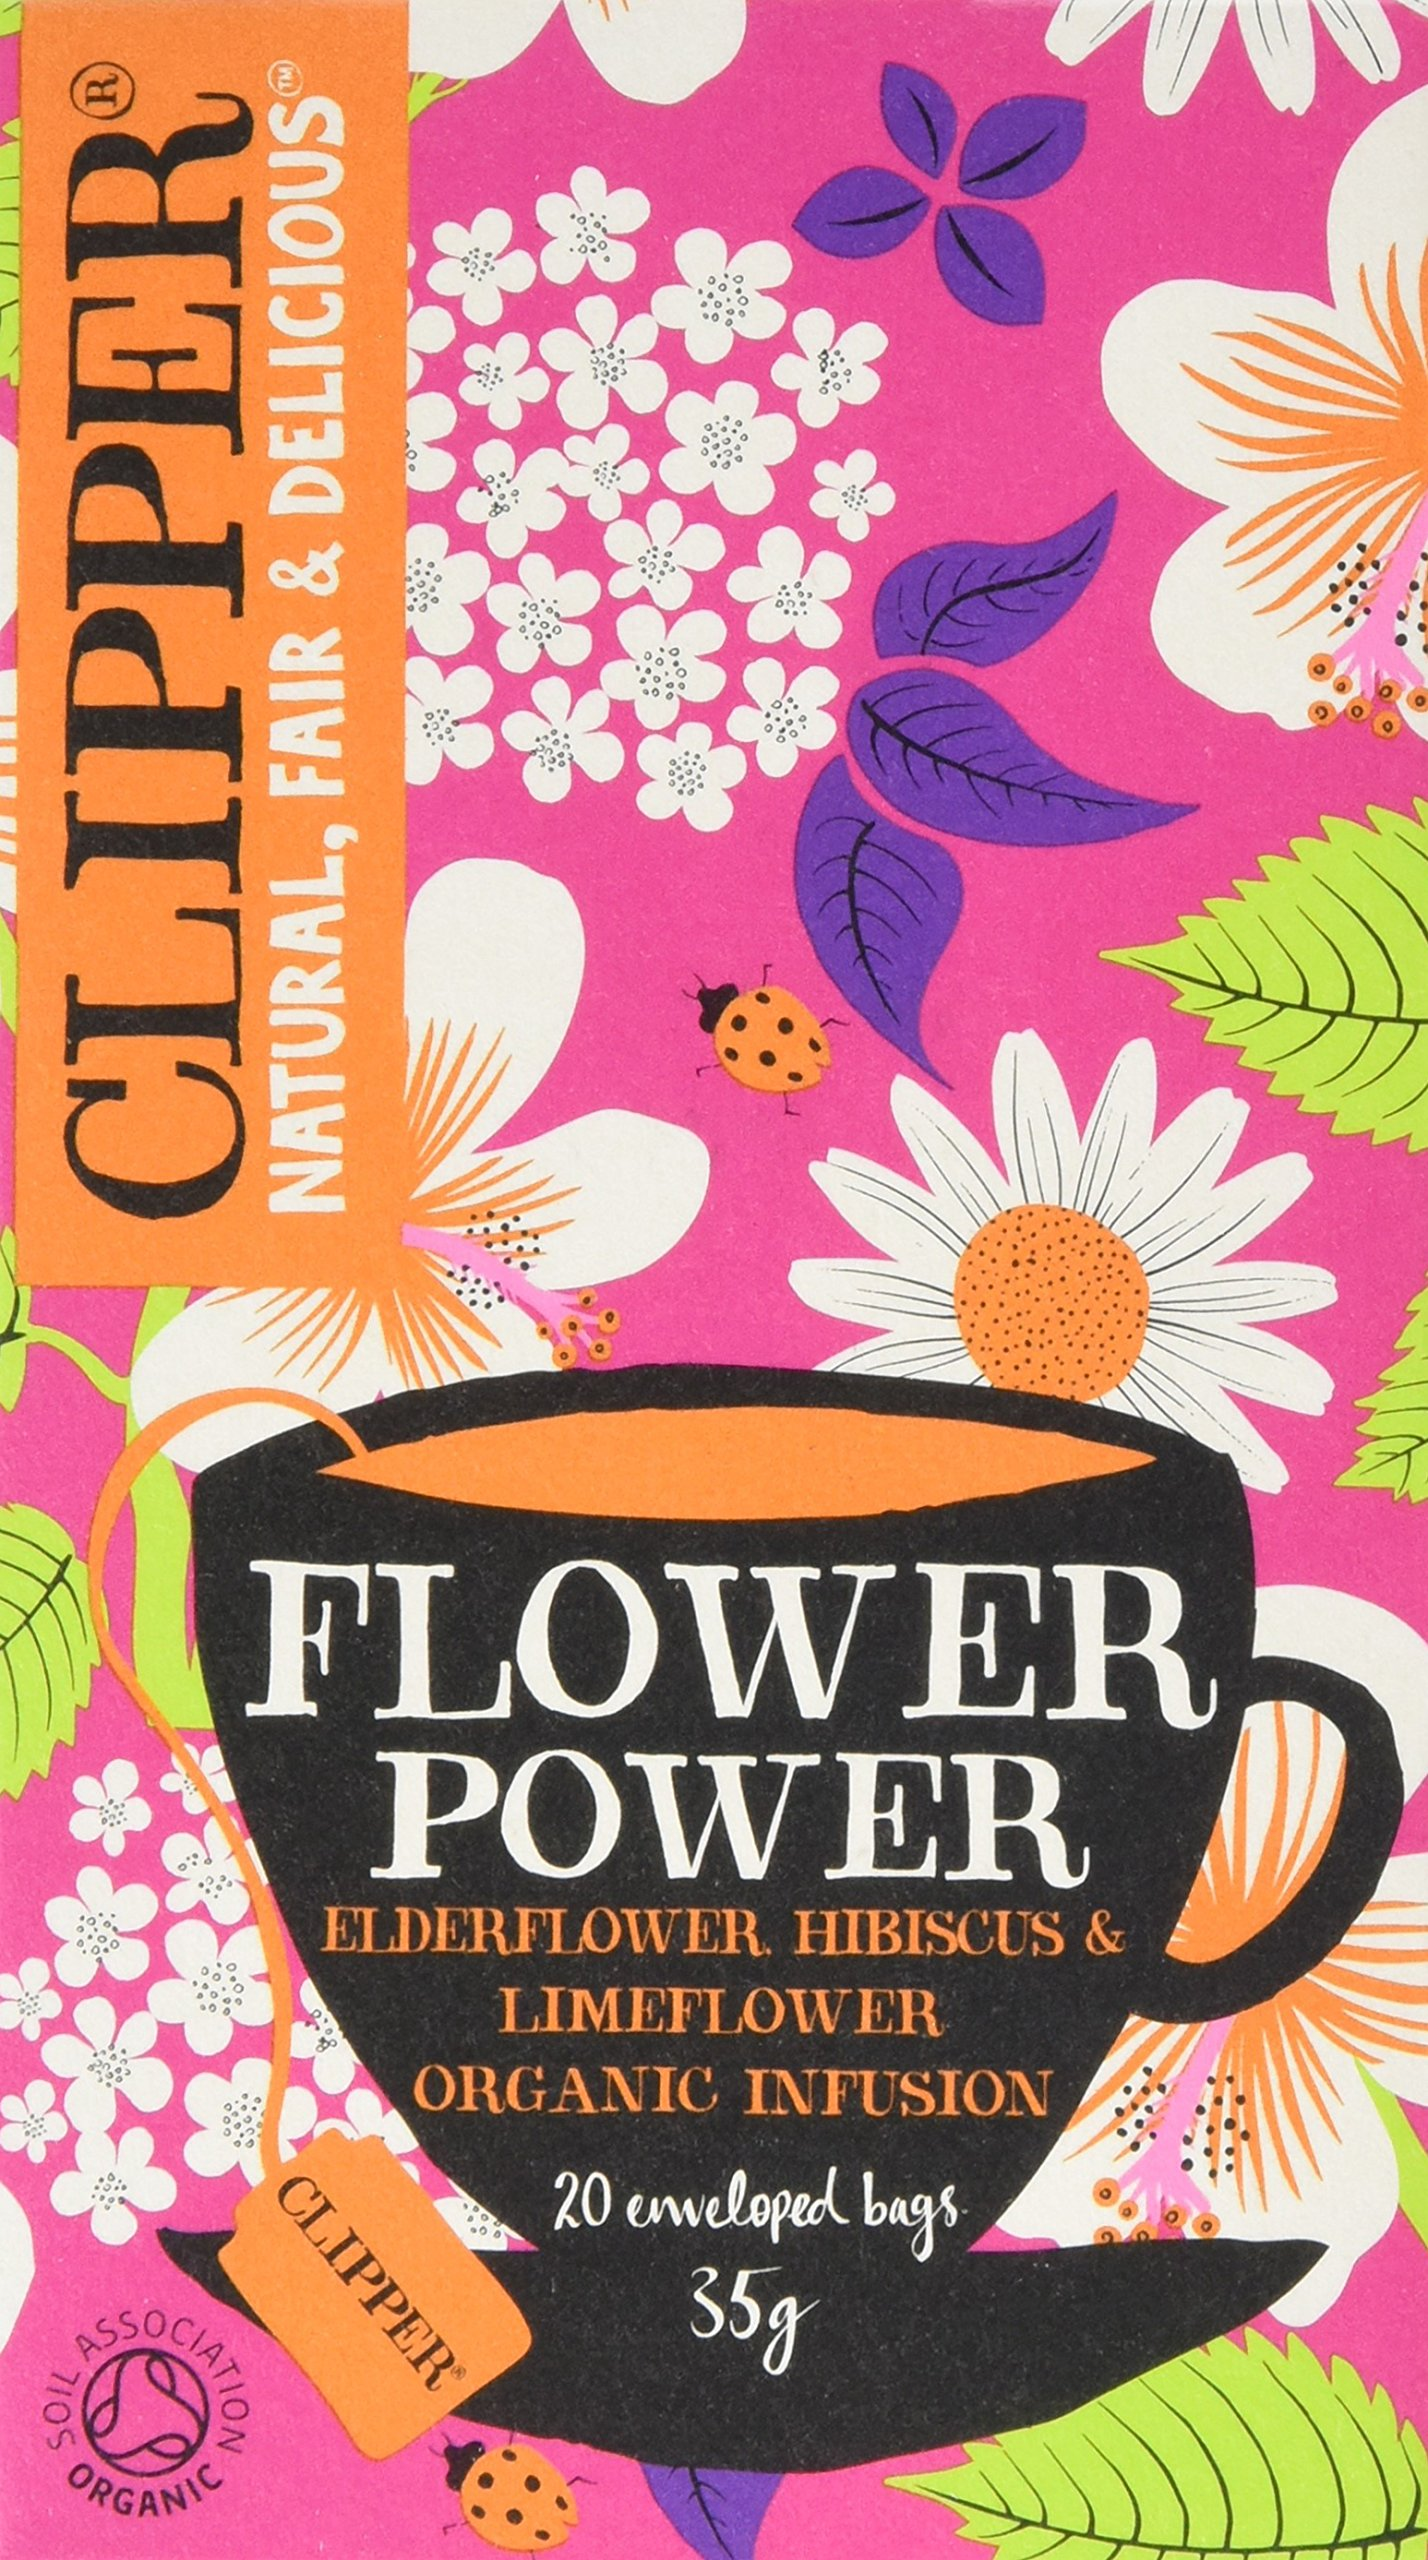 Clipper flower power tea bundle (soil association) (infusions) (flower power) (6 packs of 20 bags) (120 bags) (a floral tea with aromas of camomile, elderflower, hibiscus) (brews in 3-5 minutes)